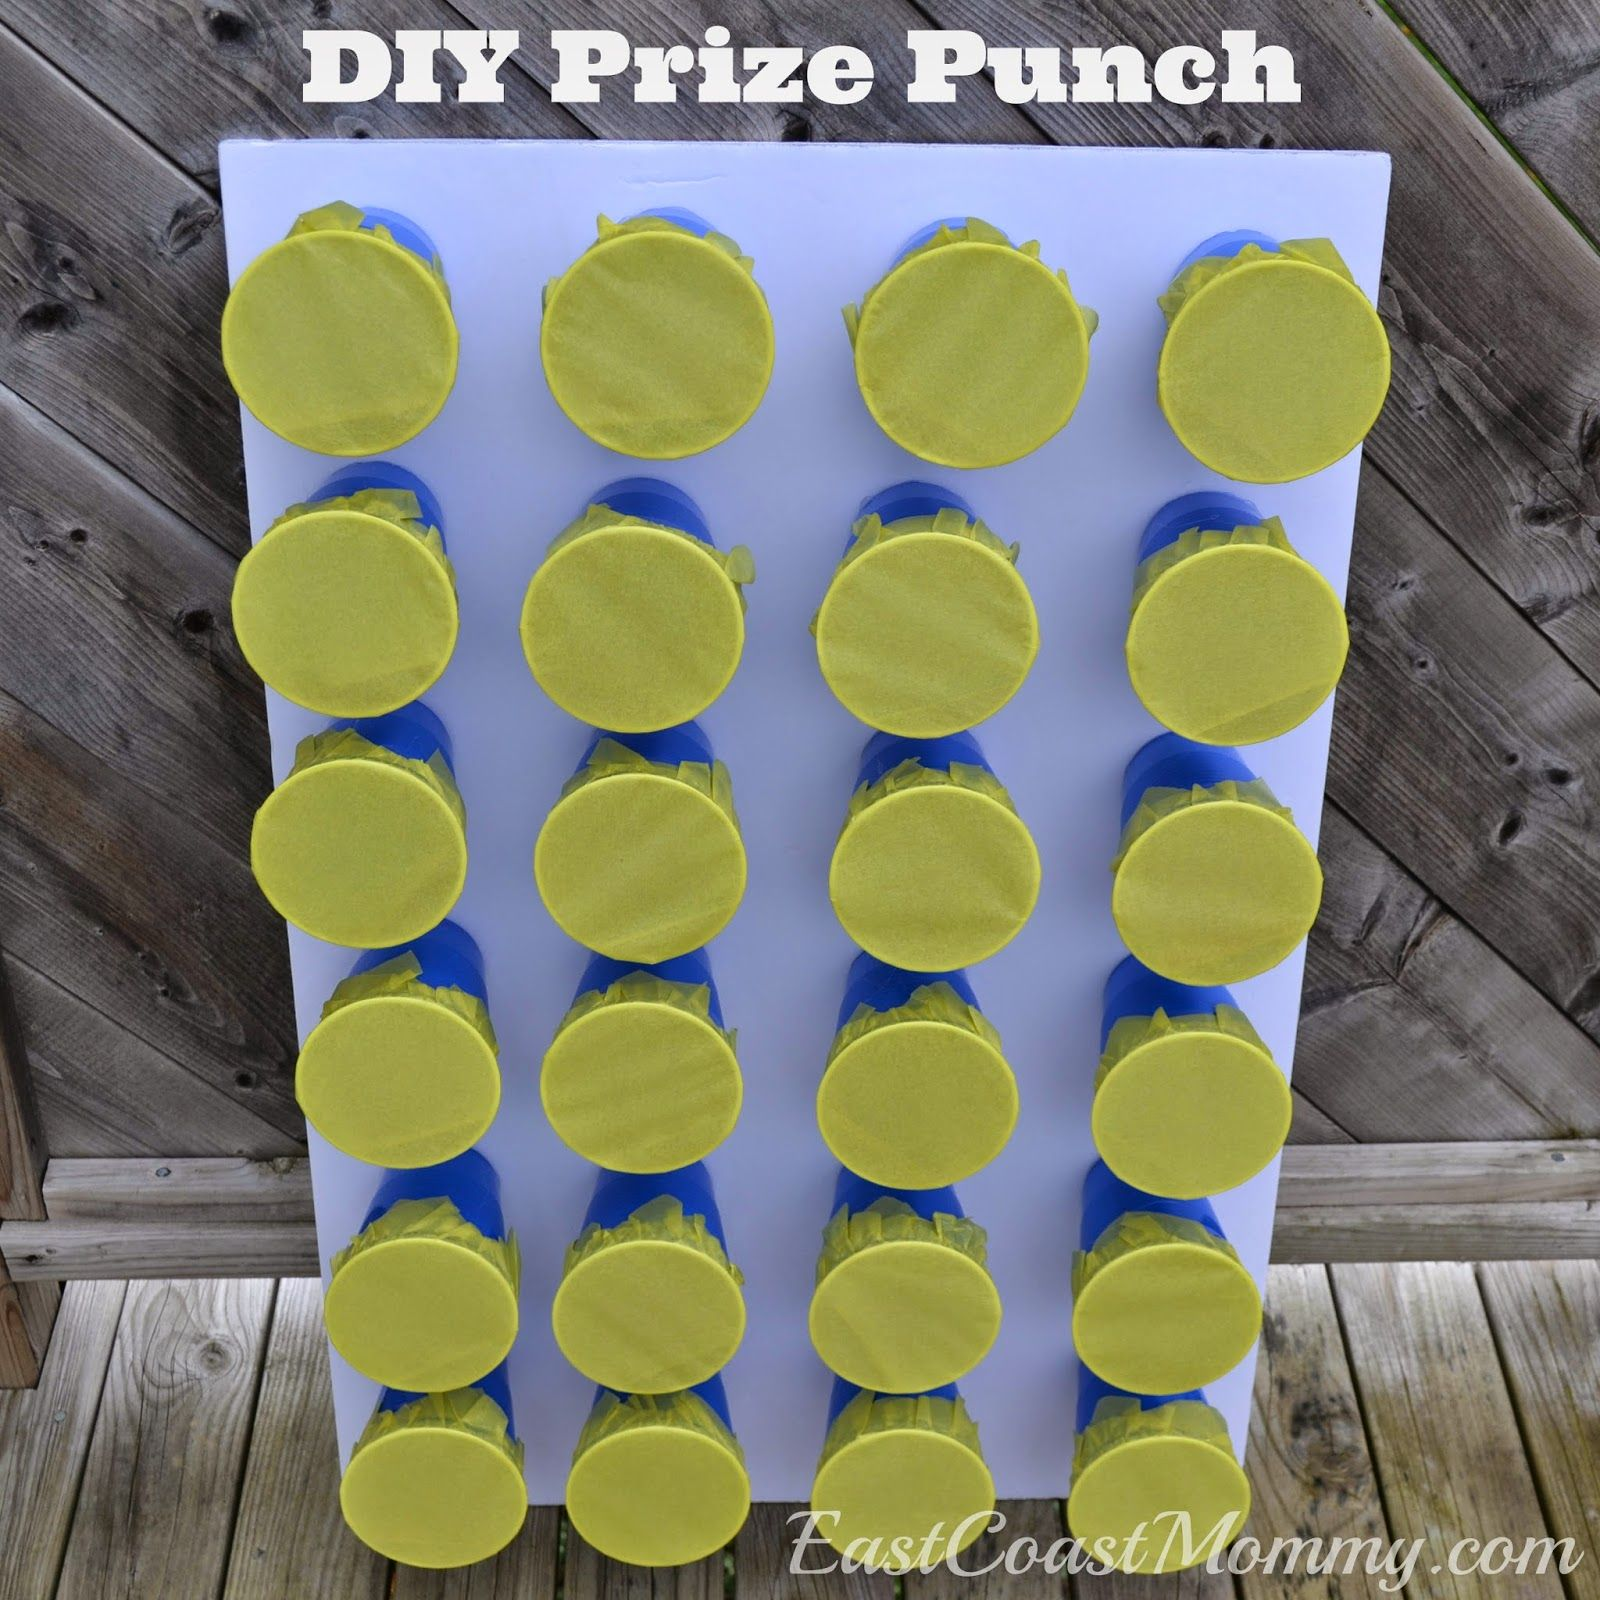 East Coast Mommy DIY Prize Punch More Diy Birthday Party Games Camping